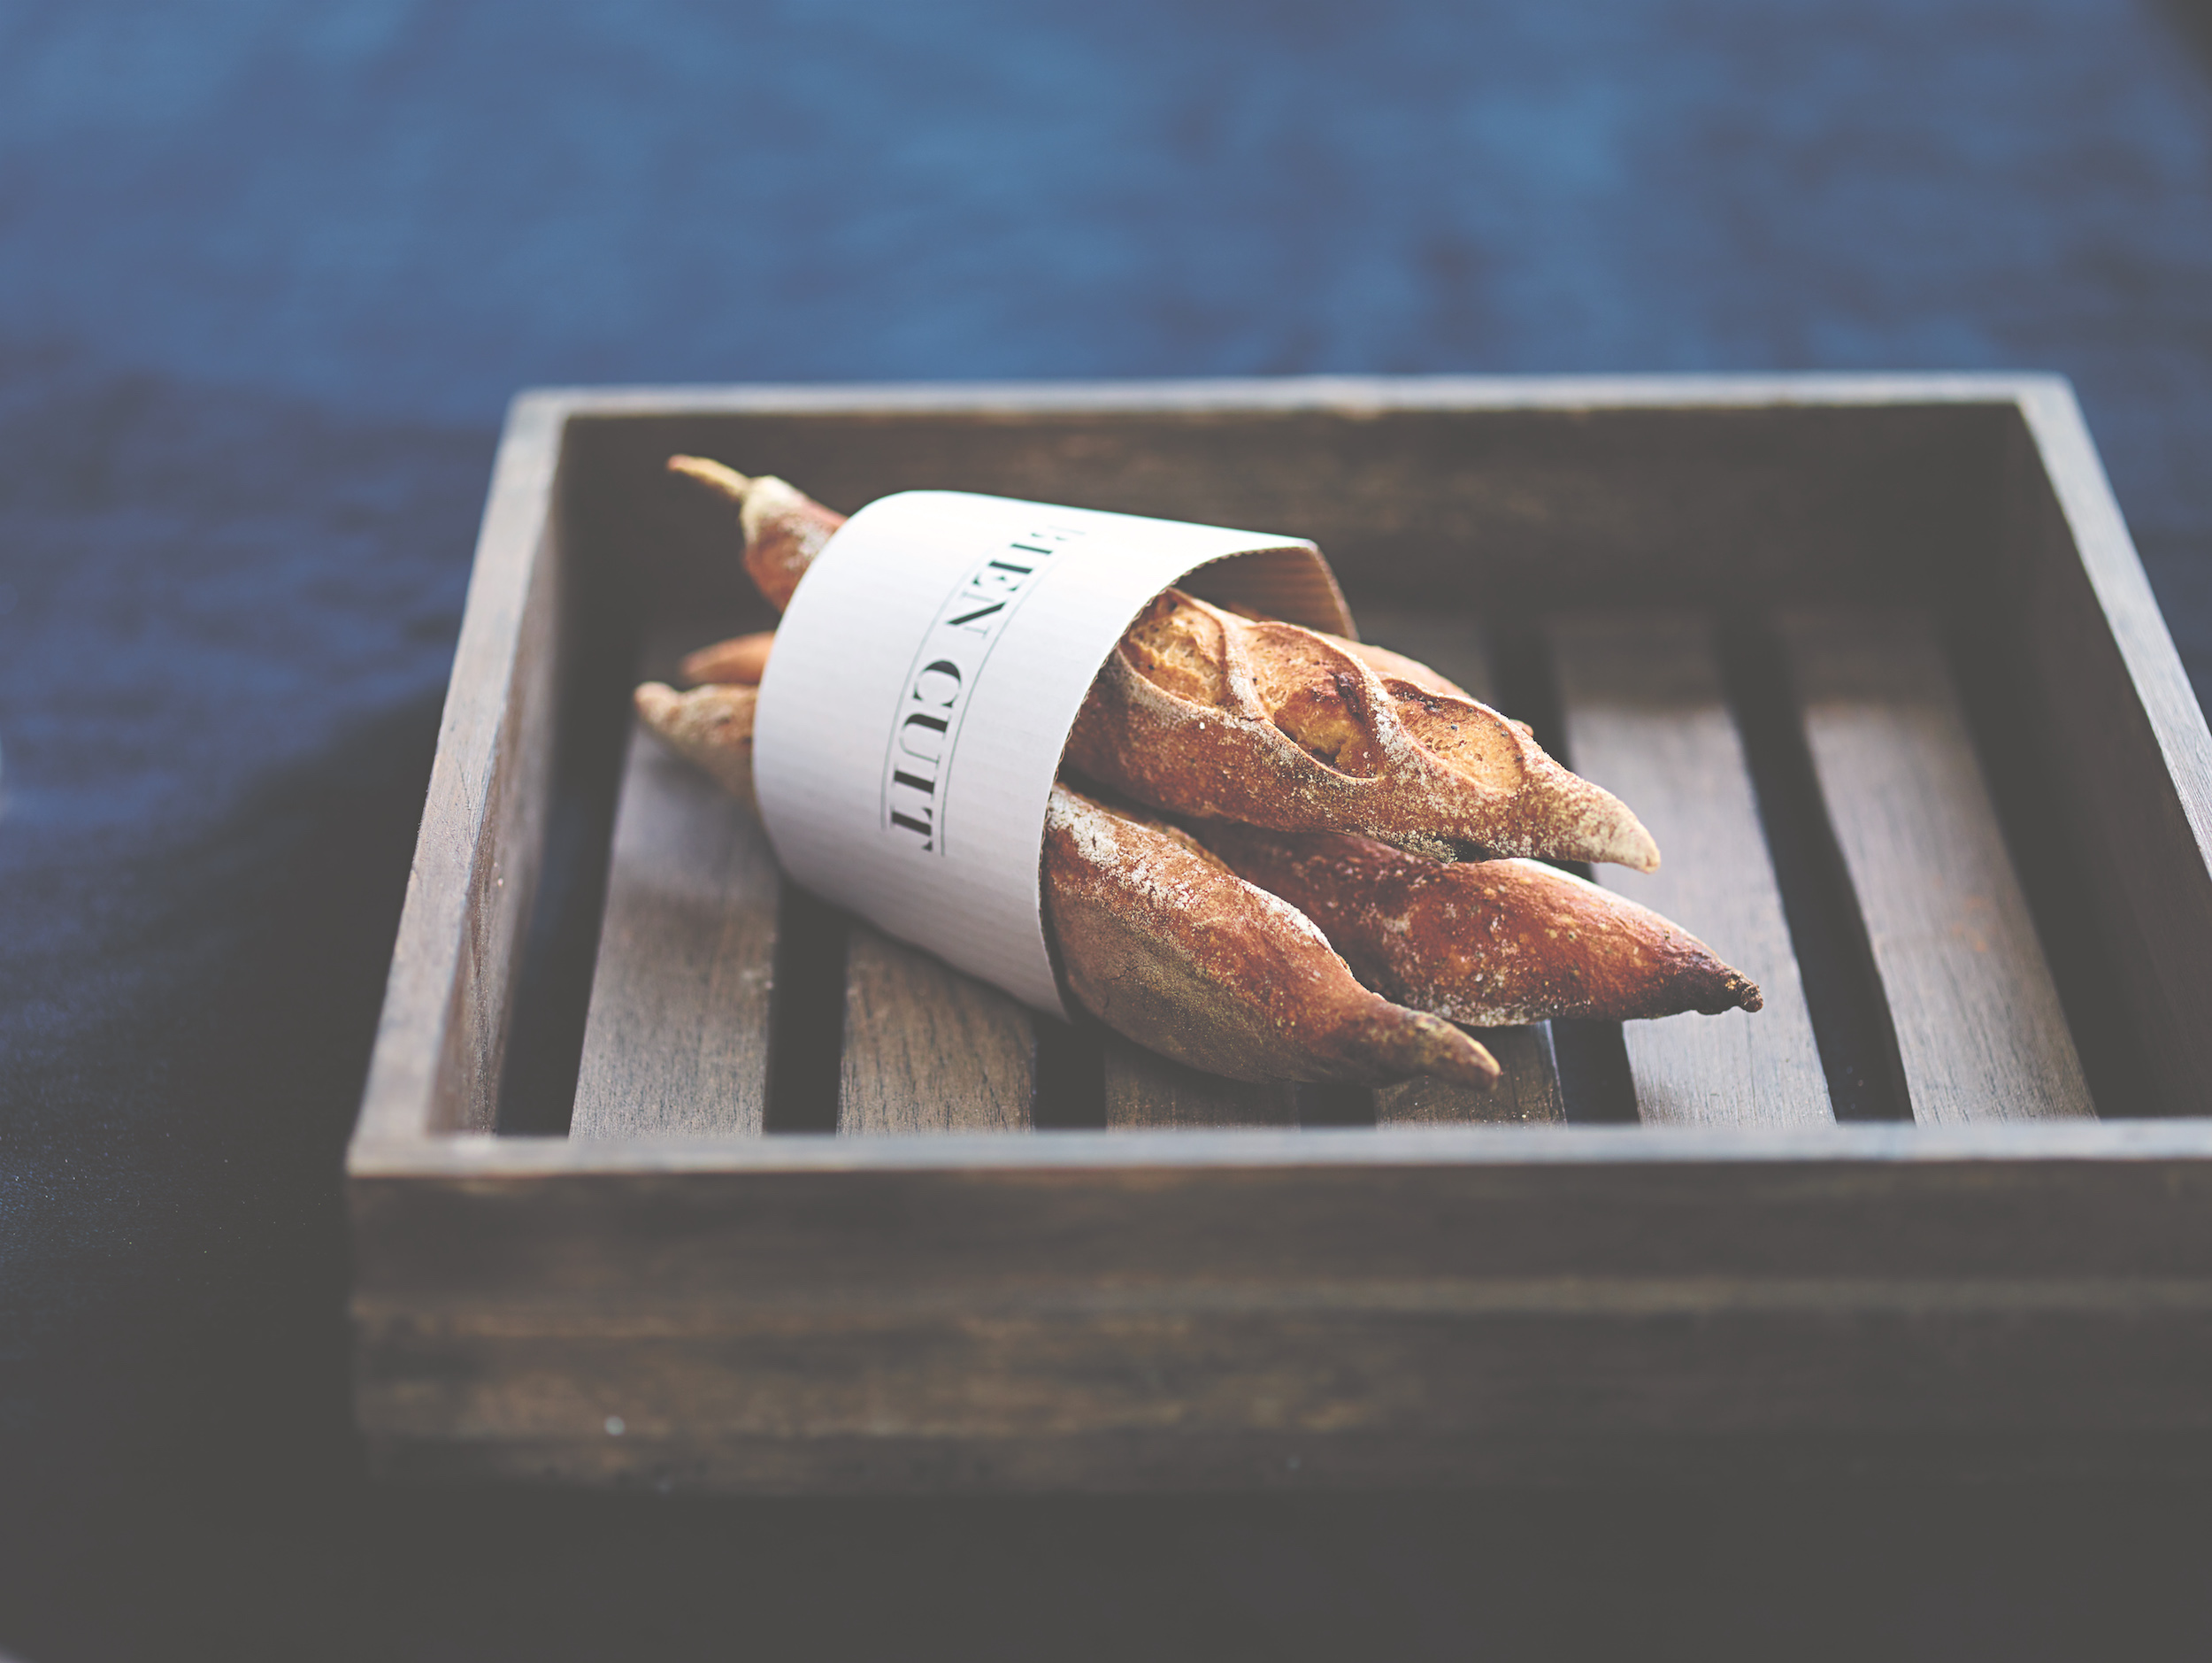 Credit: Thomas Schauer, from Bien Cuit: The Art of Bread